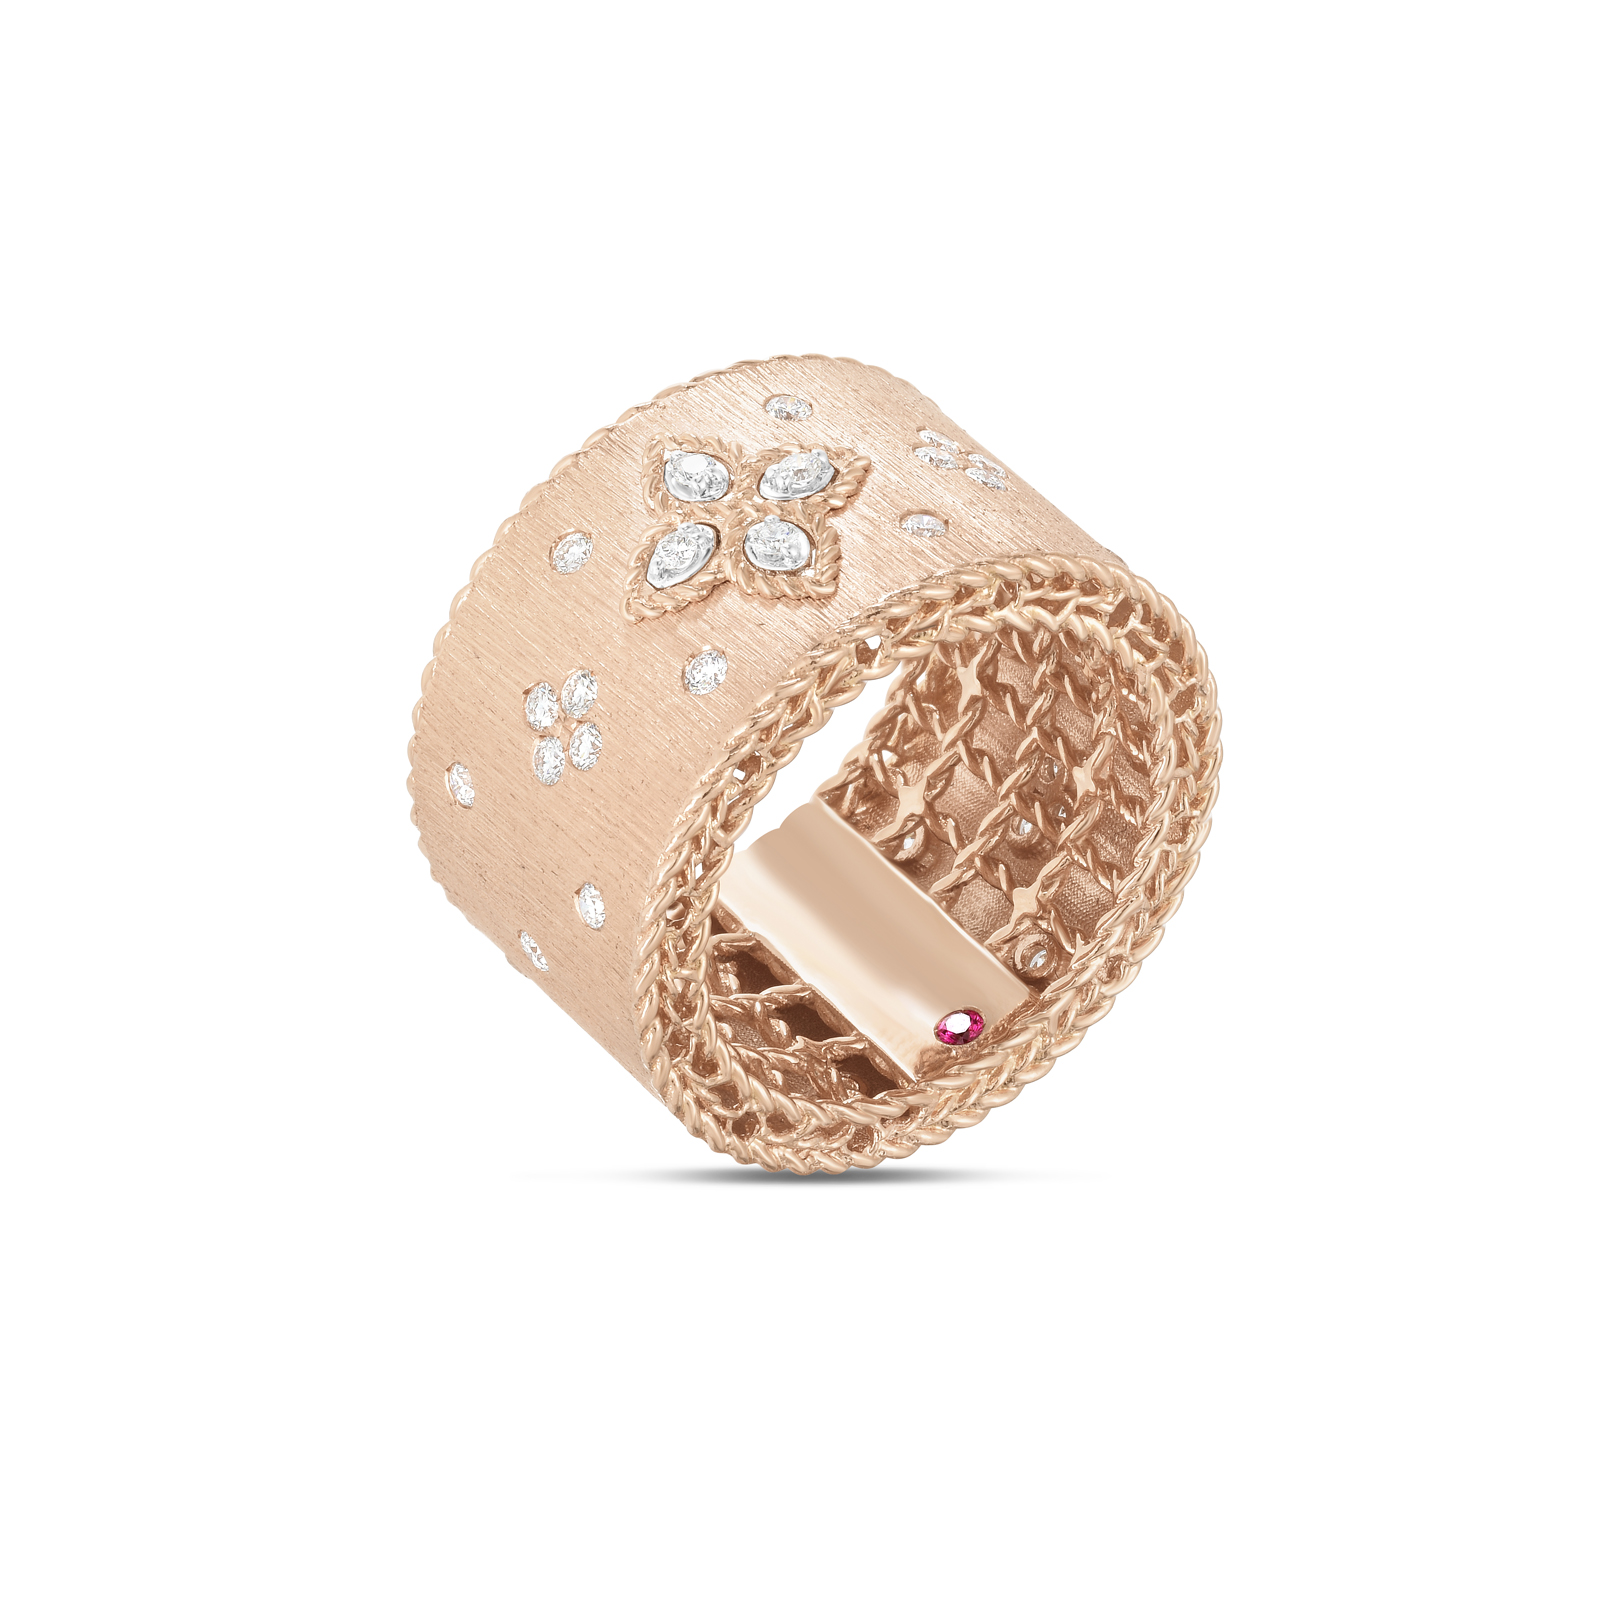 Venetian Princess Ring